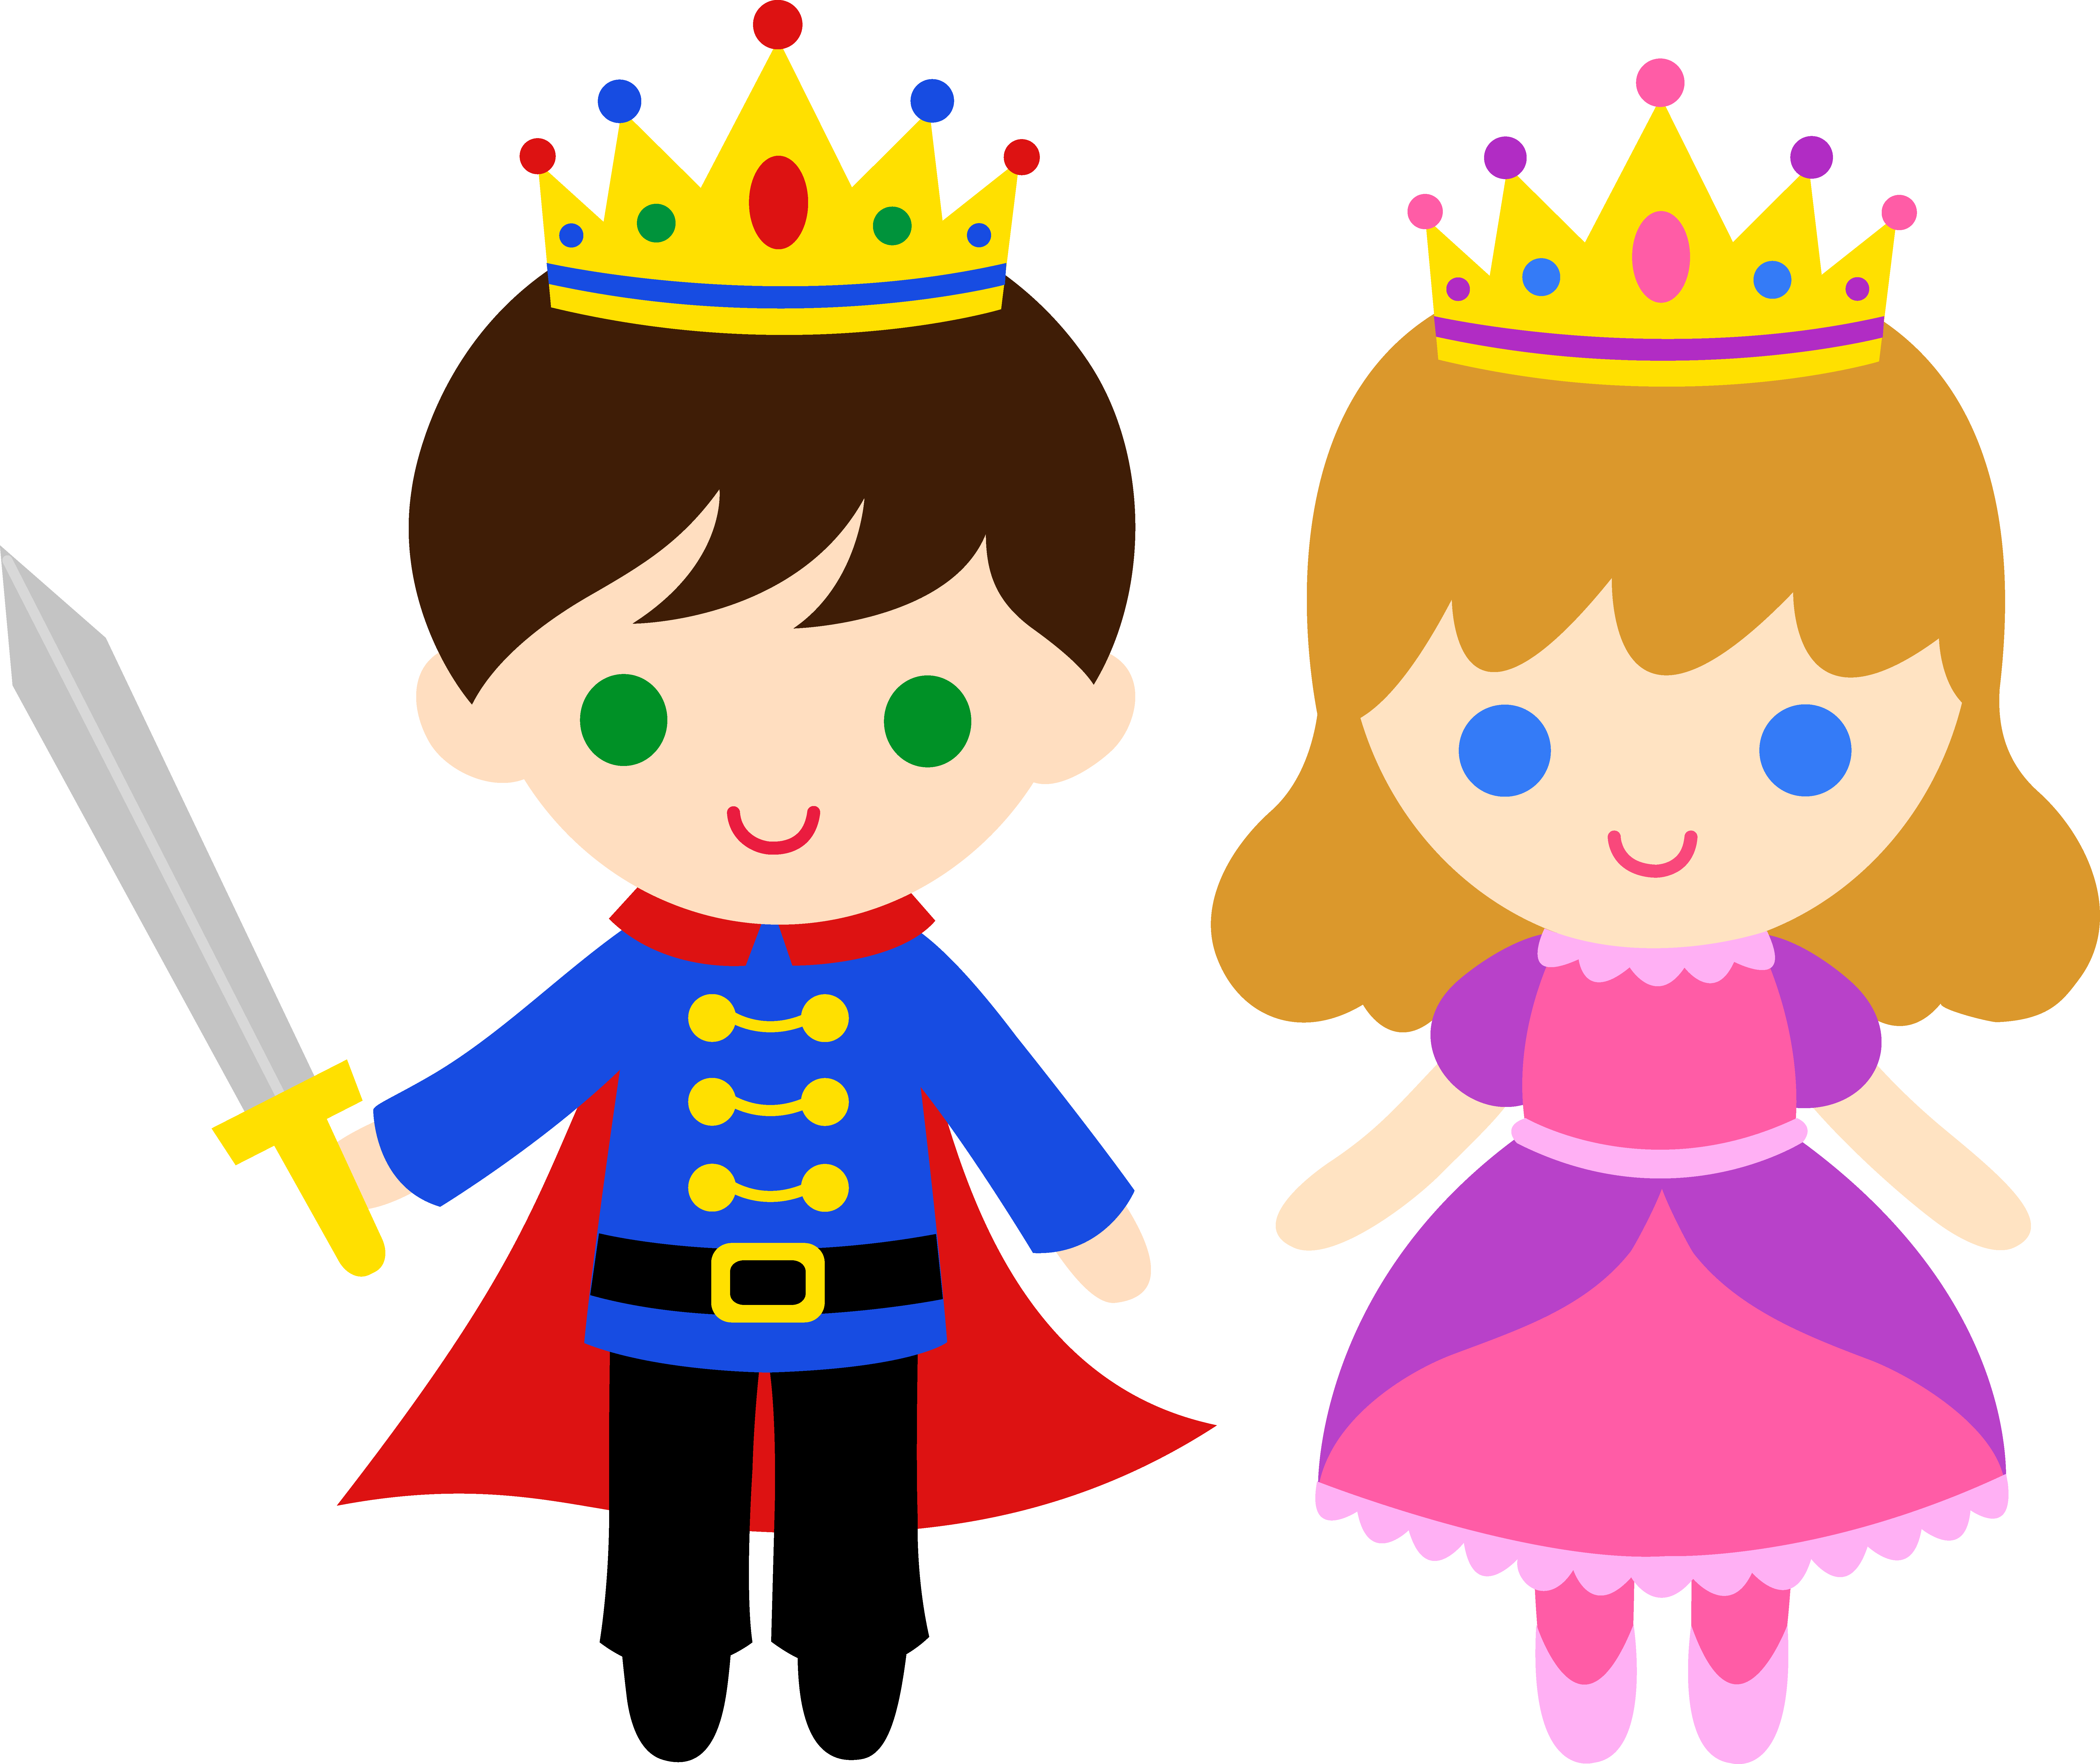 Crown prince clipart image freeuse stock Cute Prince and Princess 1 - Free Clip Art image freeuse stock